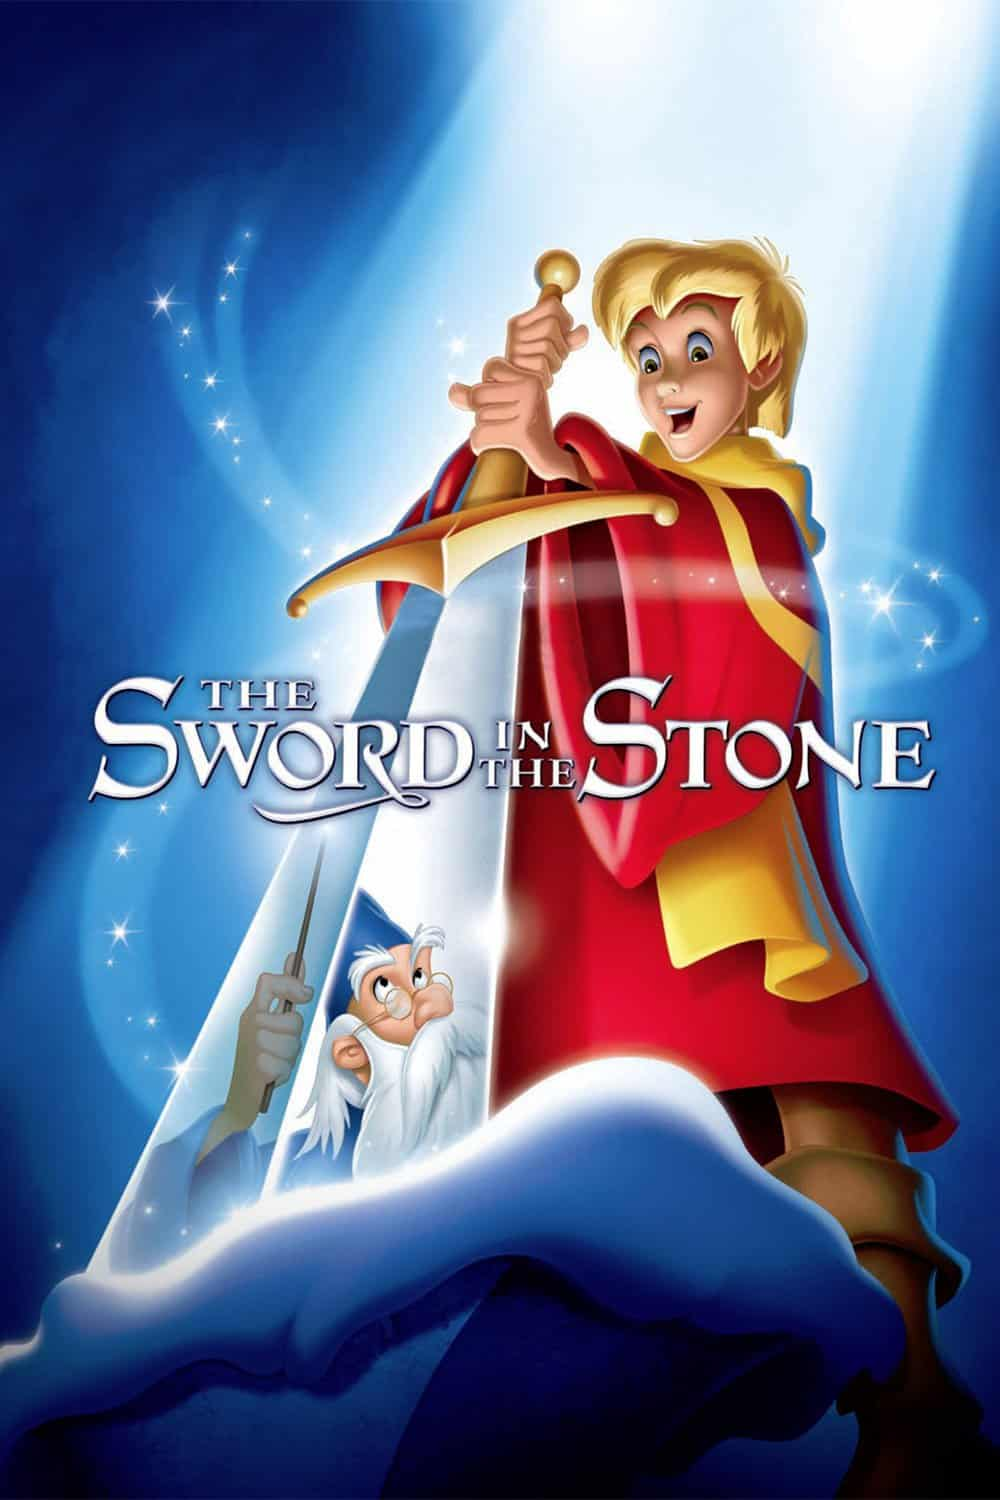 The Sword in the Stone, 1963